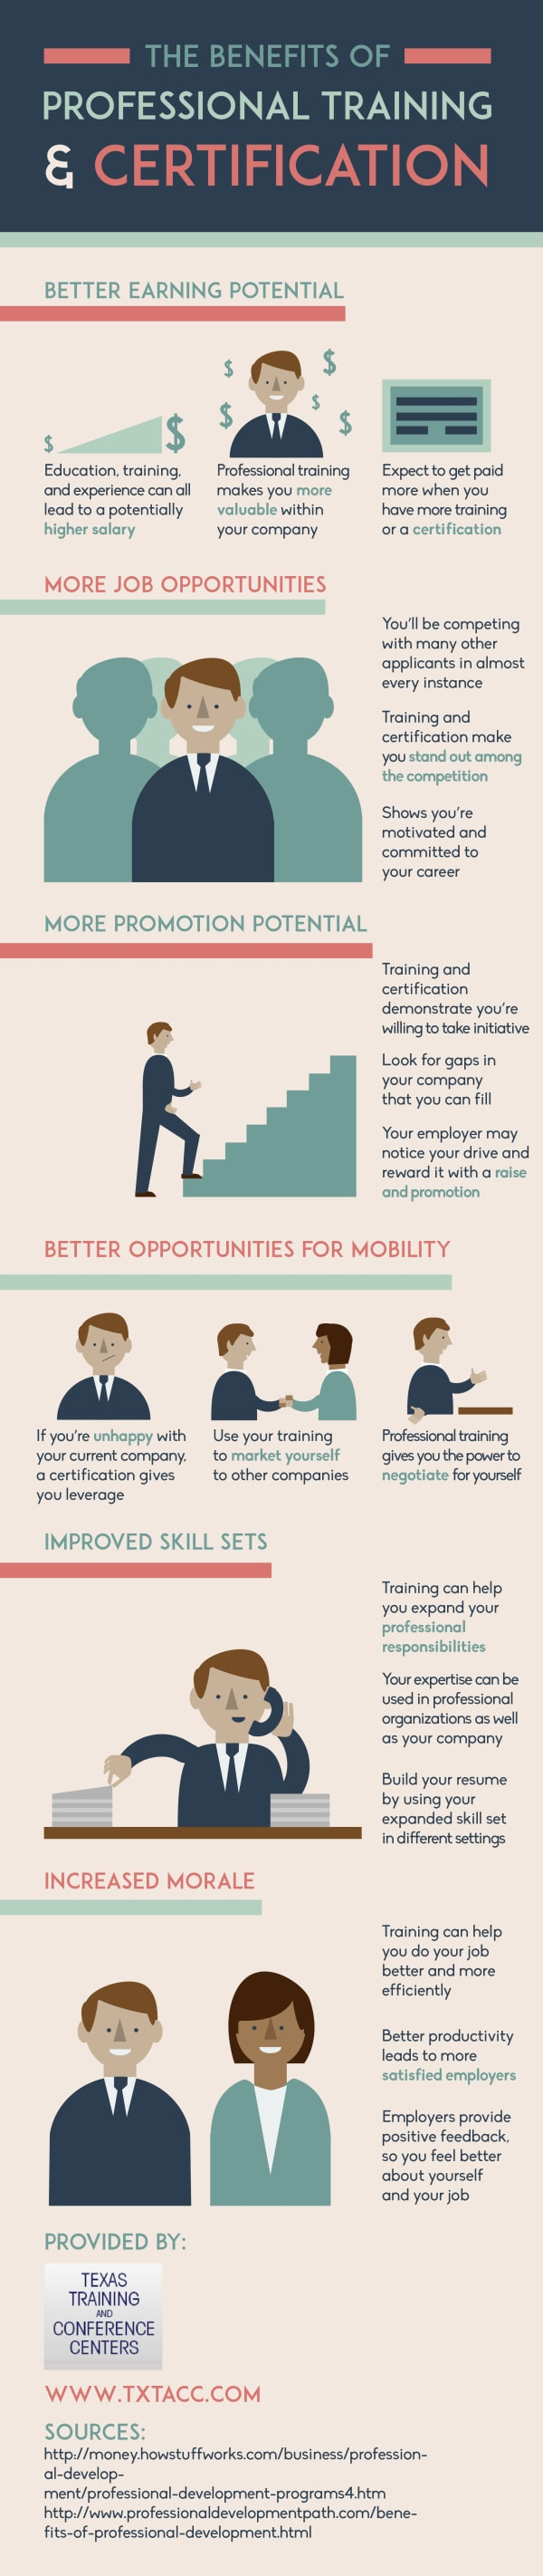 Professional Training and Certification Infographic